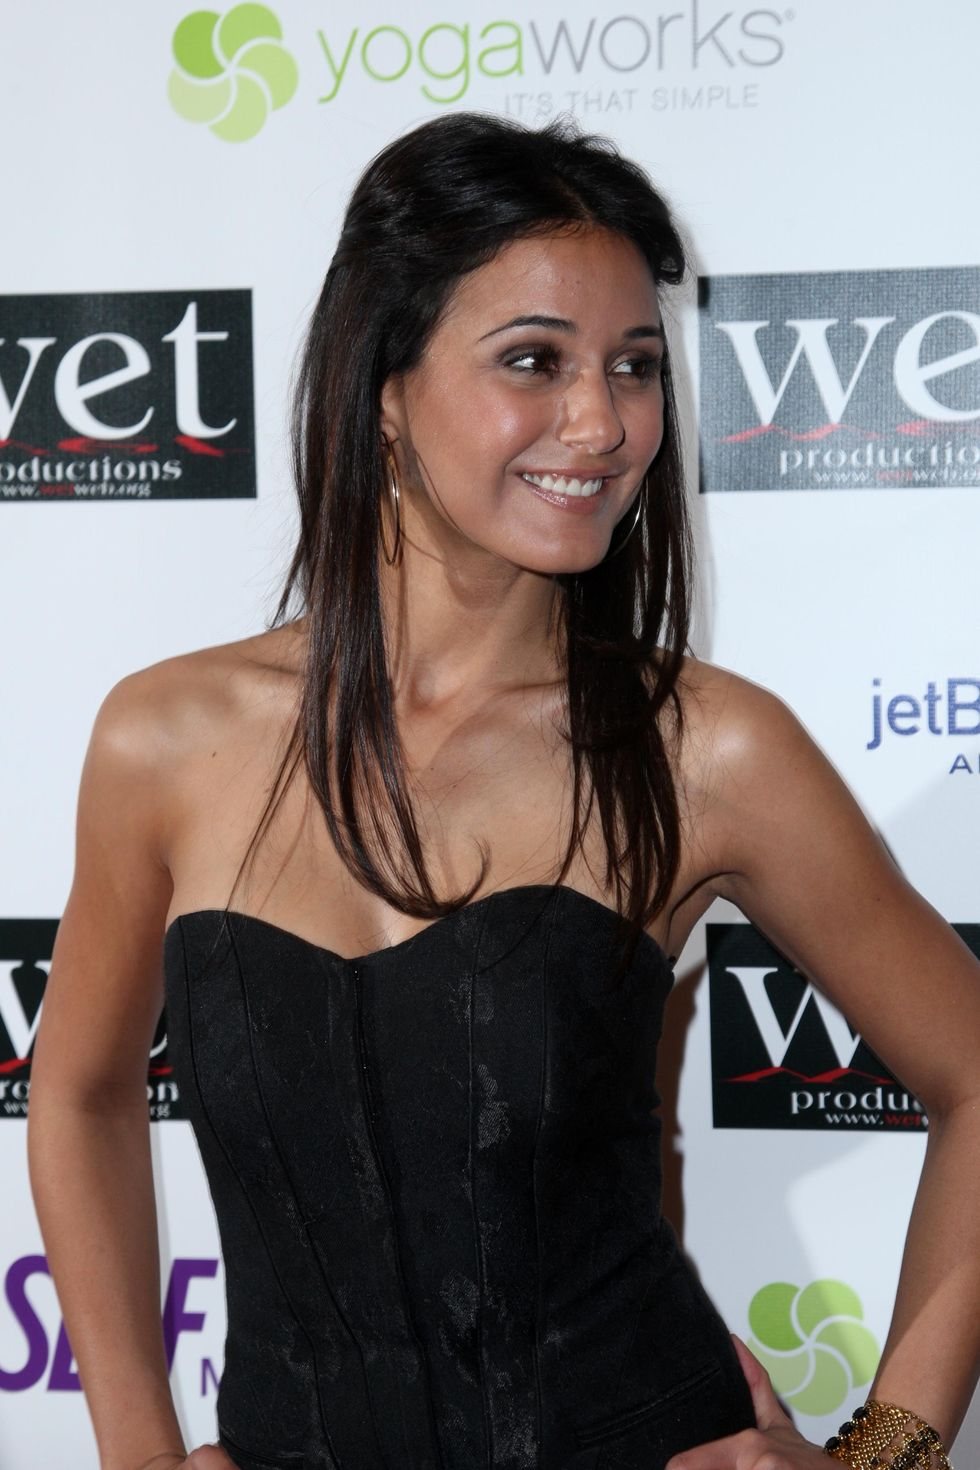 emmanuelle-chriqui-love-benefit-to-support-wets-10th-season-01